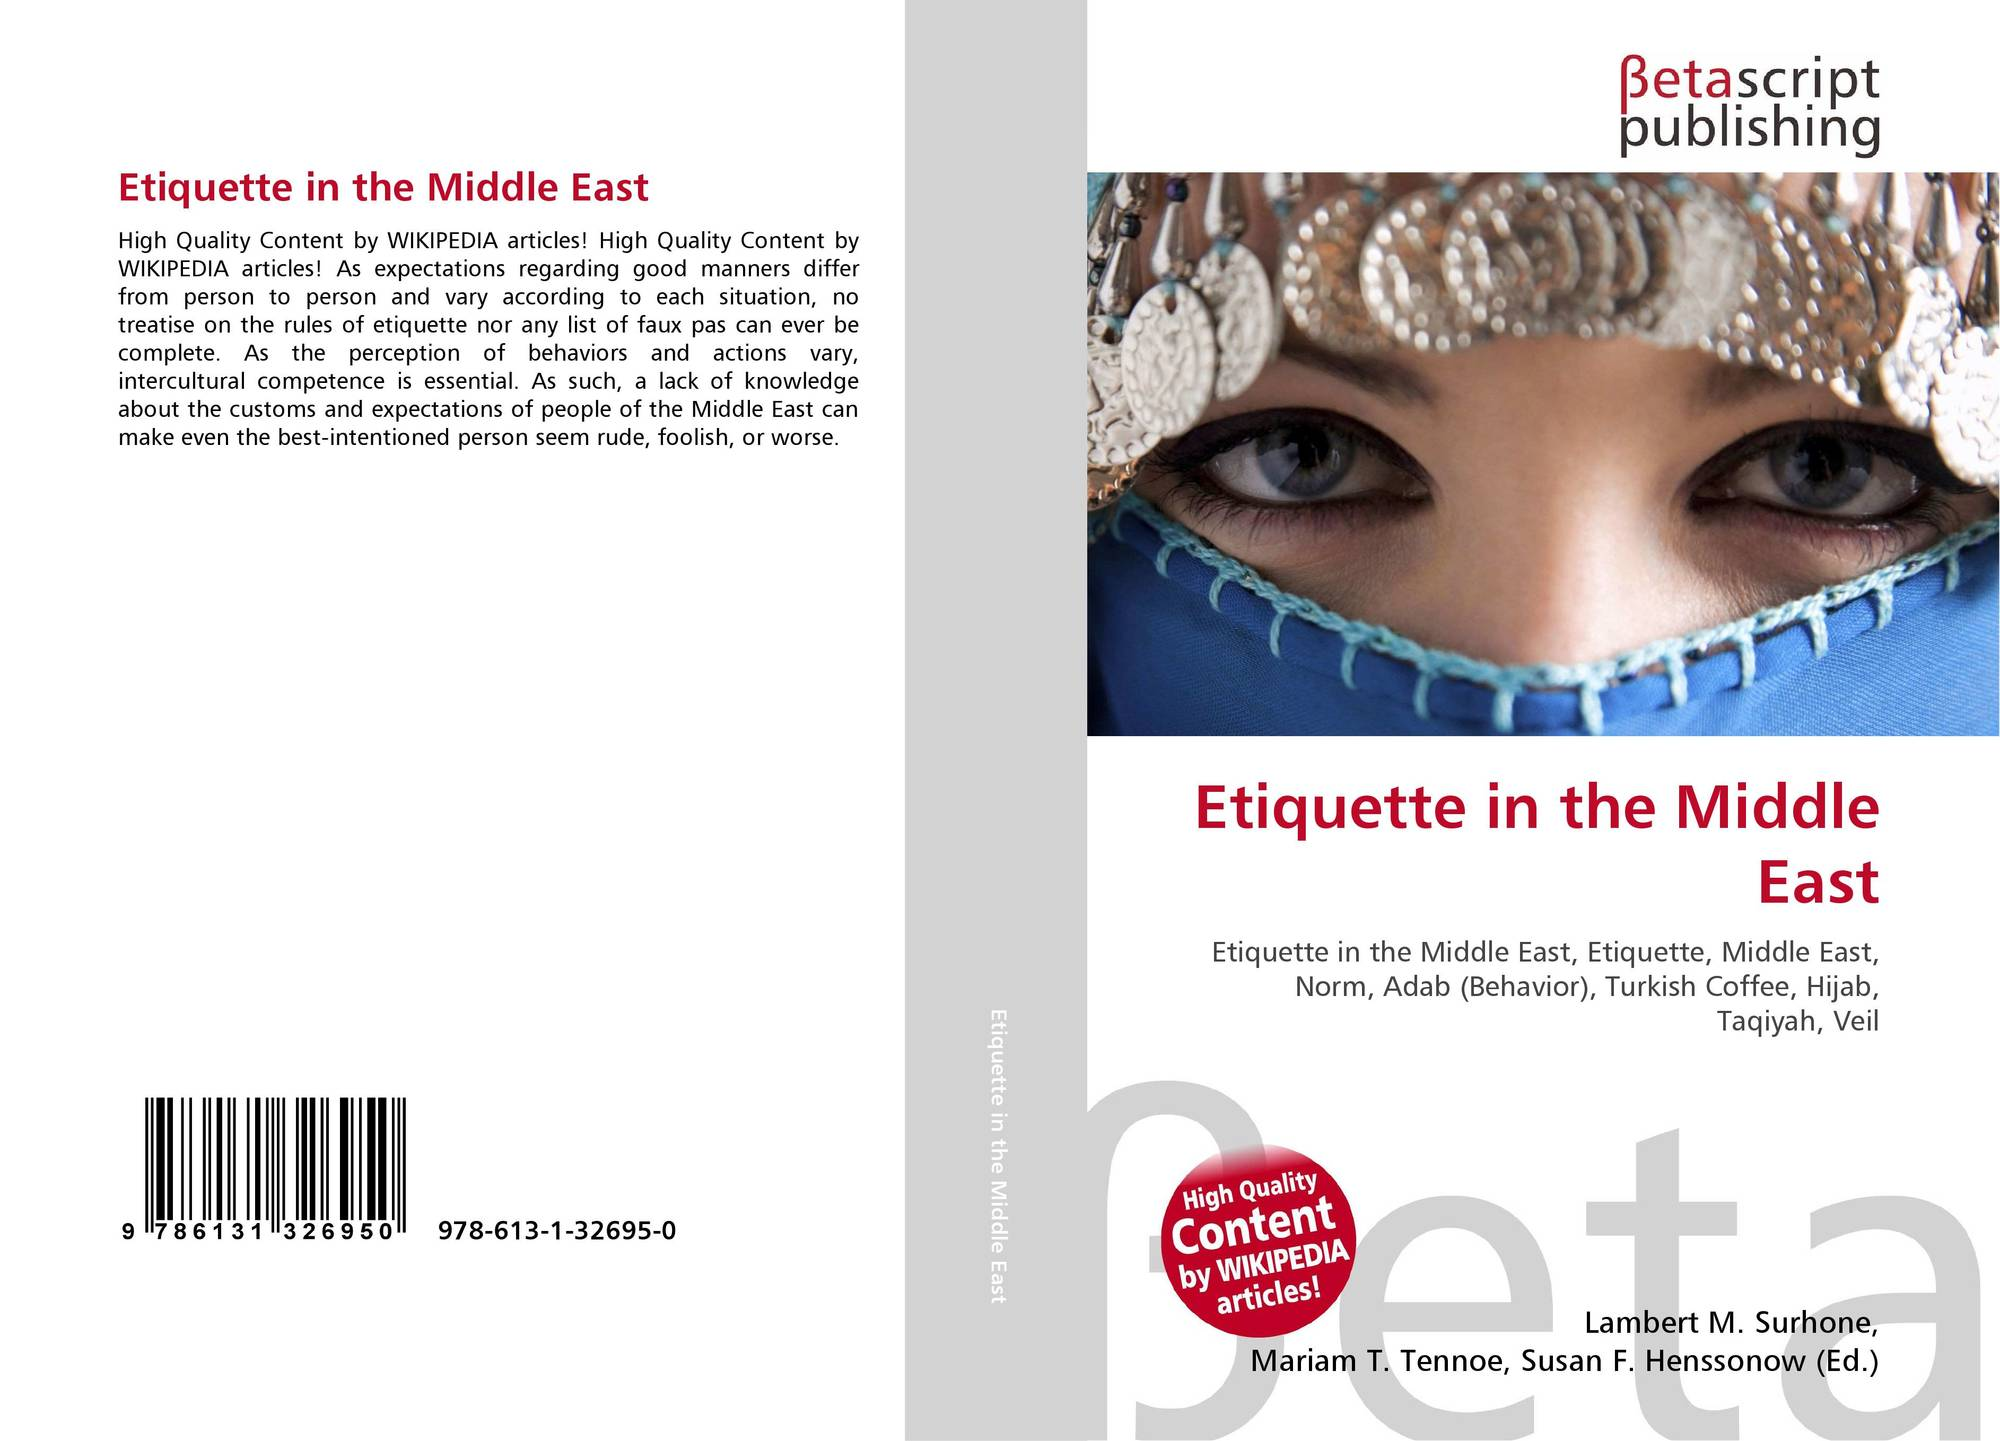 Etiquette in the Middle East, 978-613-1-32695-0, 6131326959